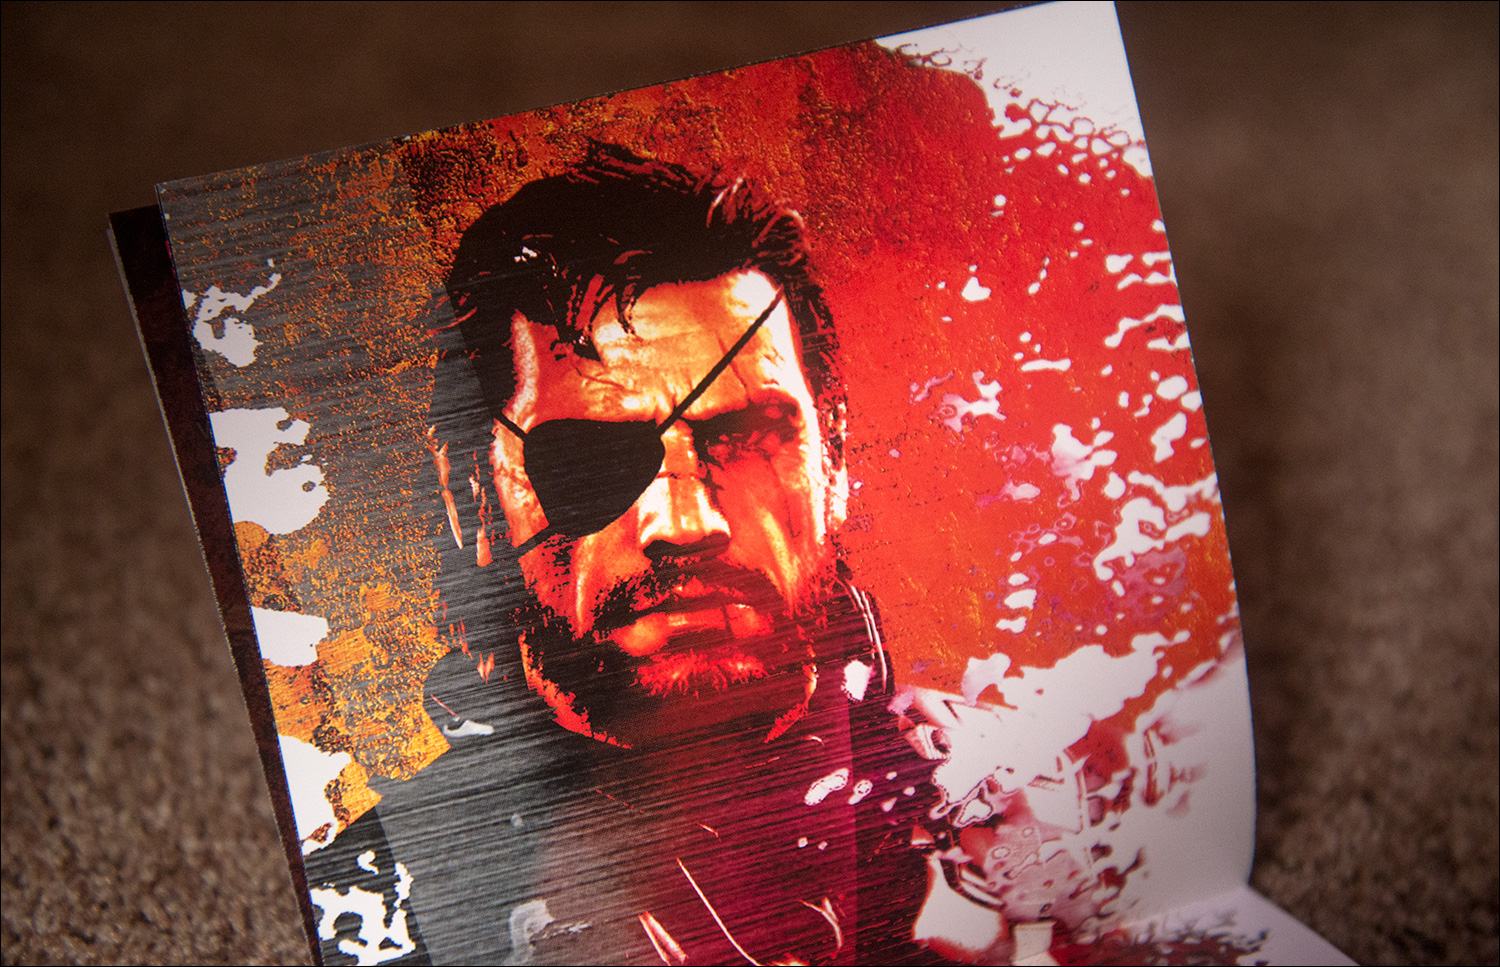 Metal-Gear-Solid-V-The-Lost-Tapes-Booklet-Venom-Snake-Art